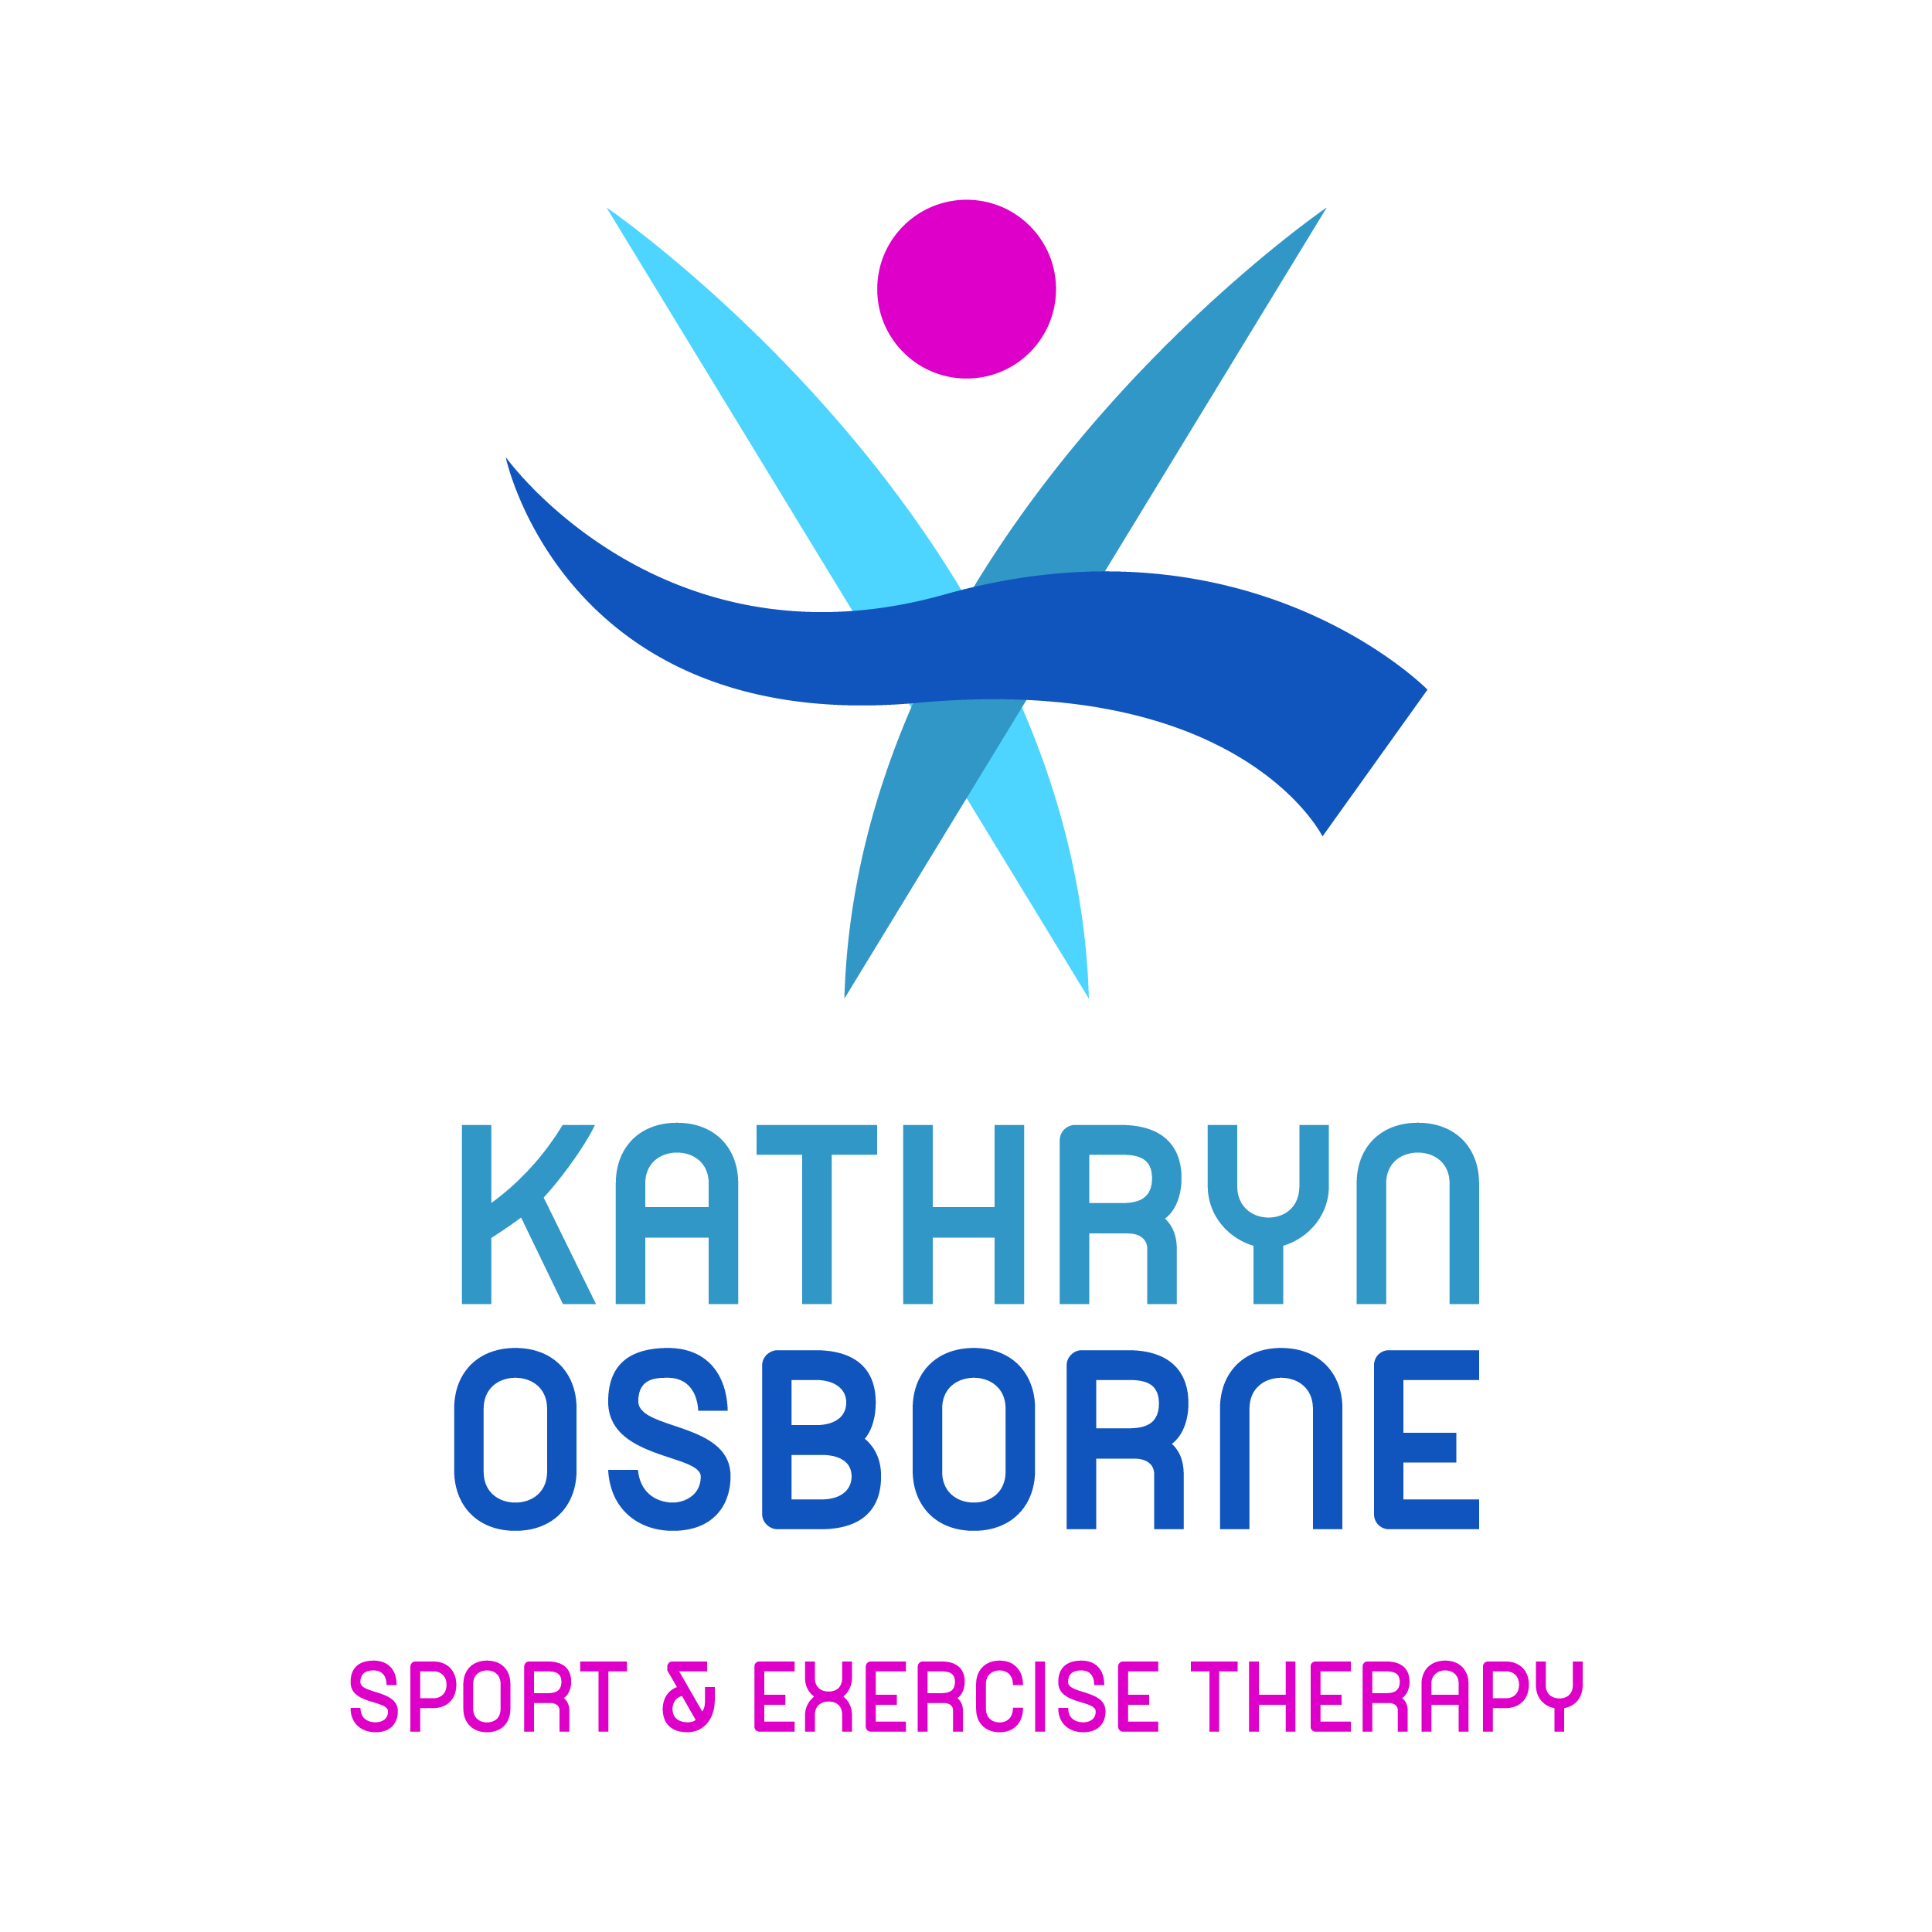 Kathryn Osborne Sports and Exercise Therapy company logo